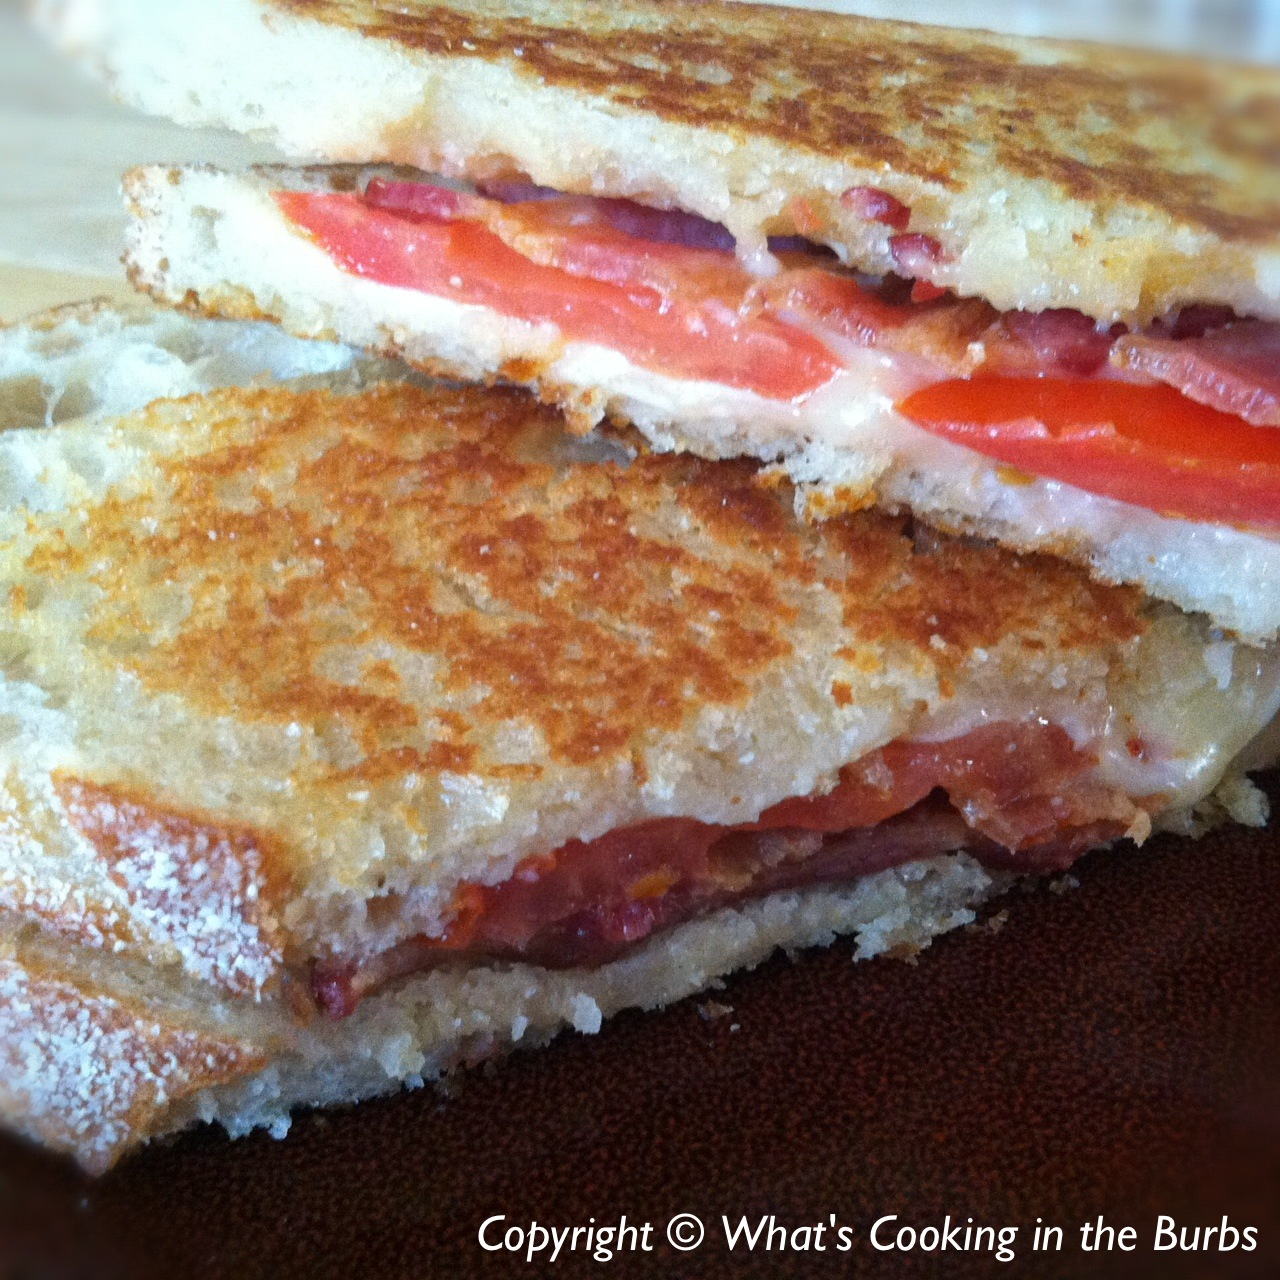 ... cooking in the burbs: White Cheddar, Bacon, and Tomato Grilled Cheese